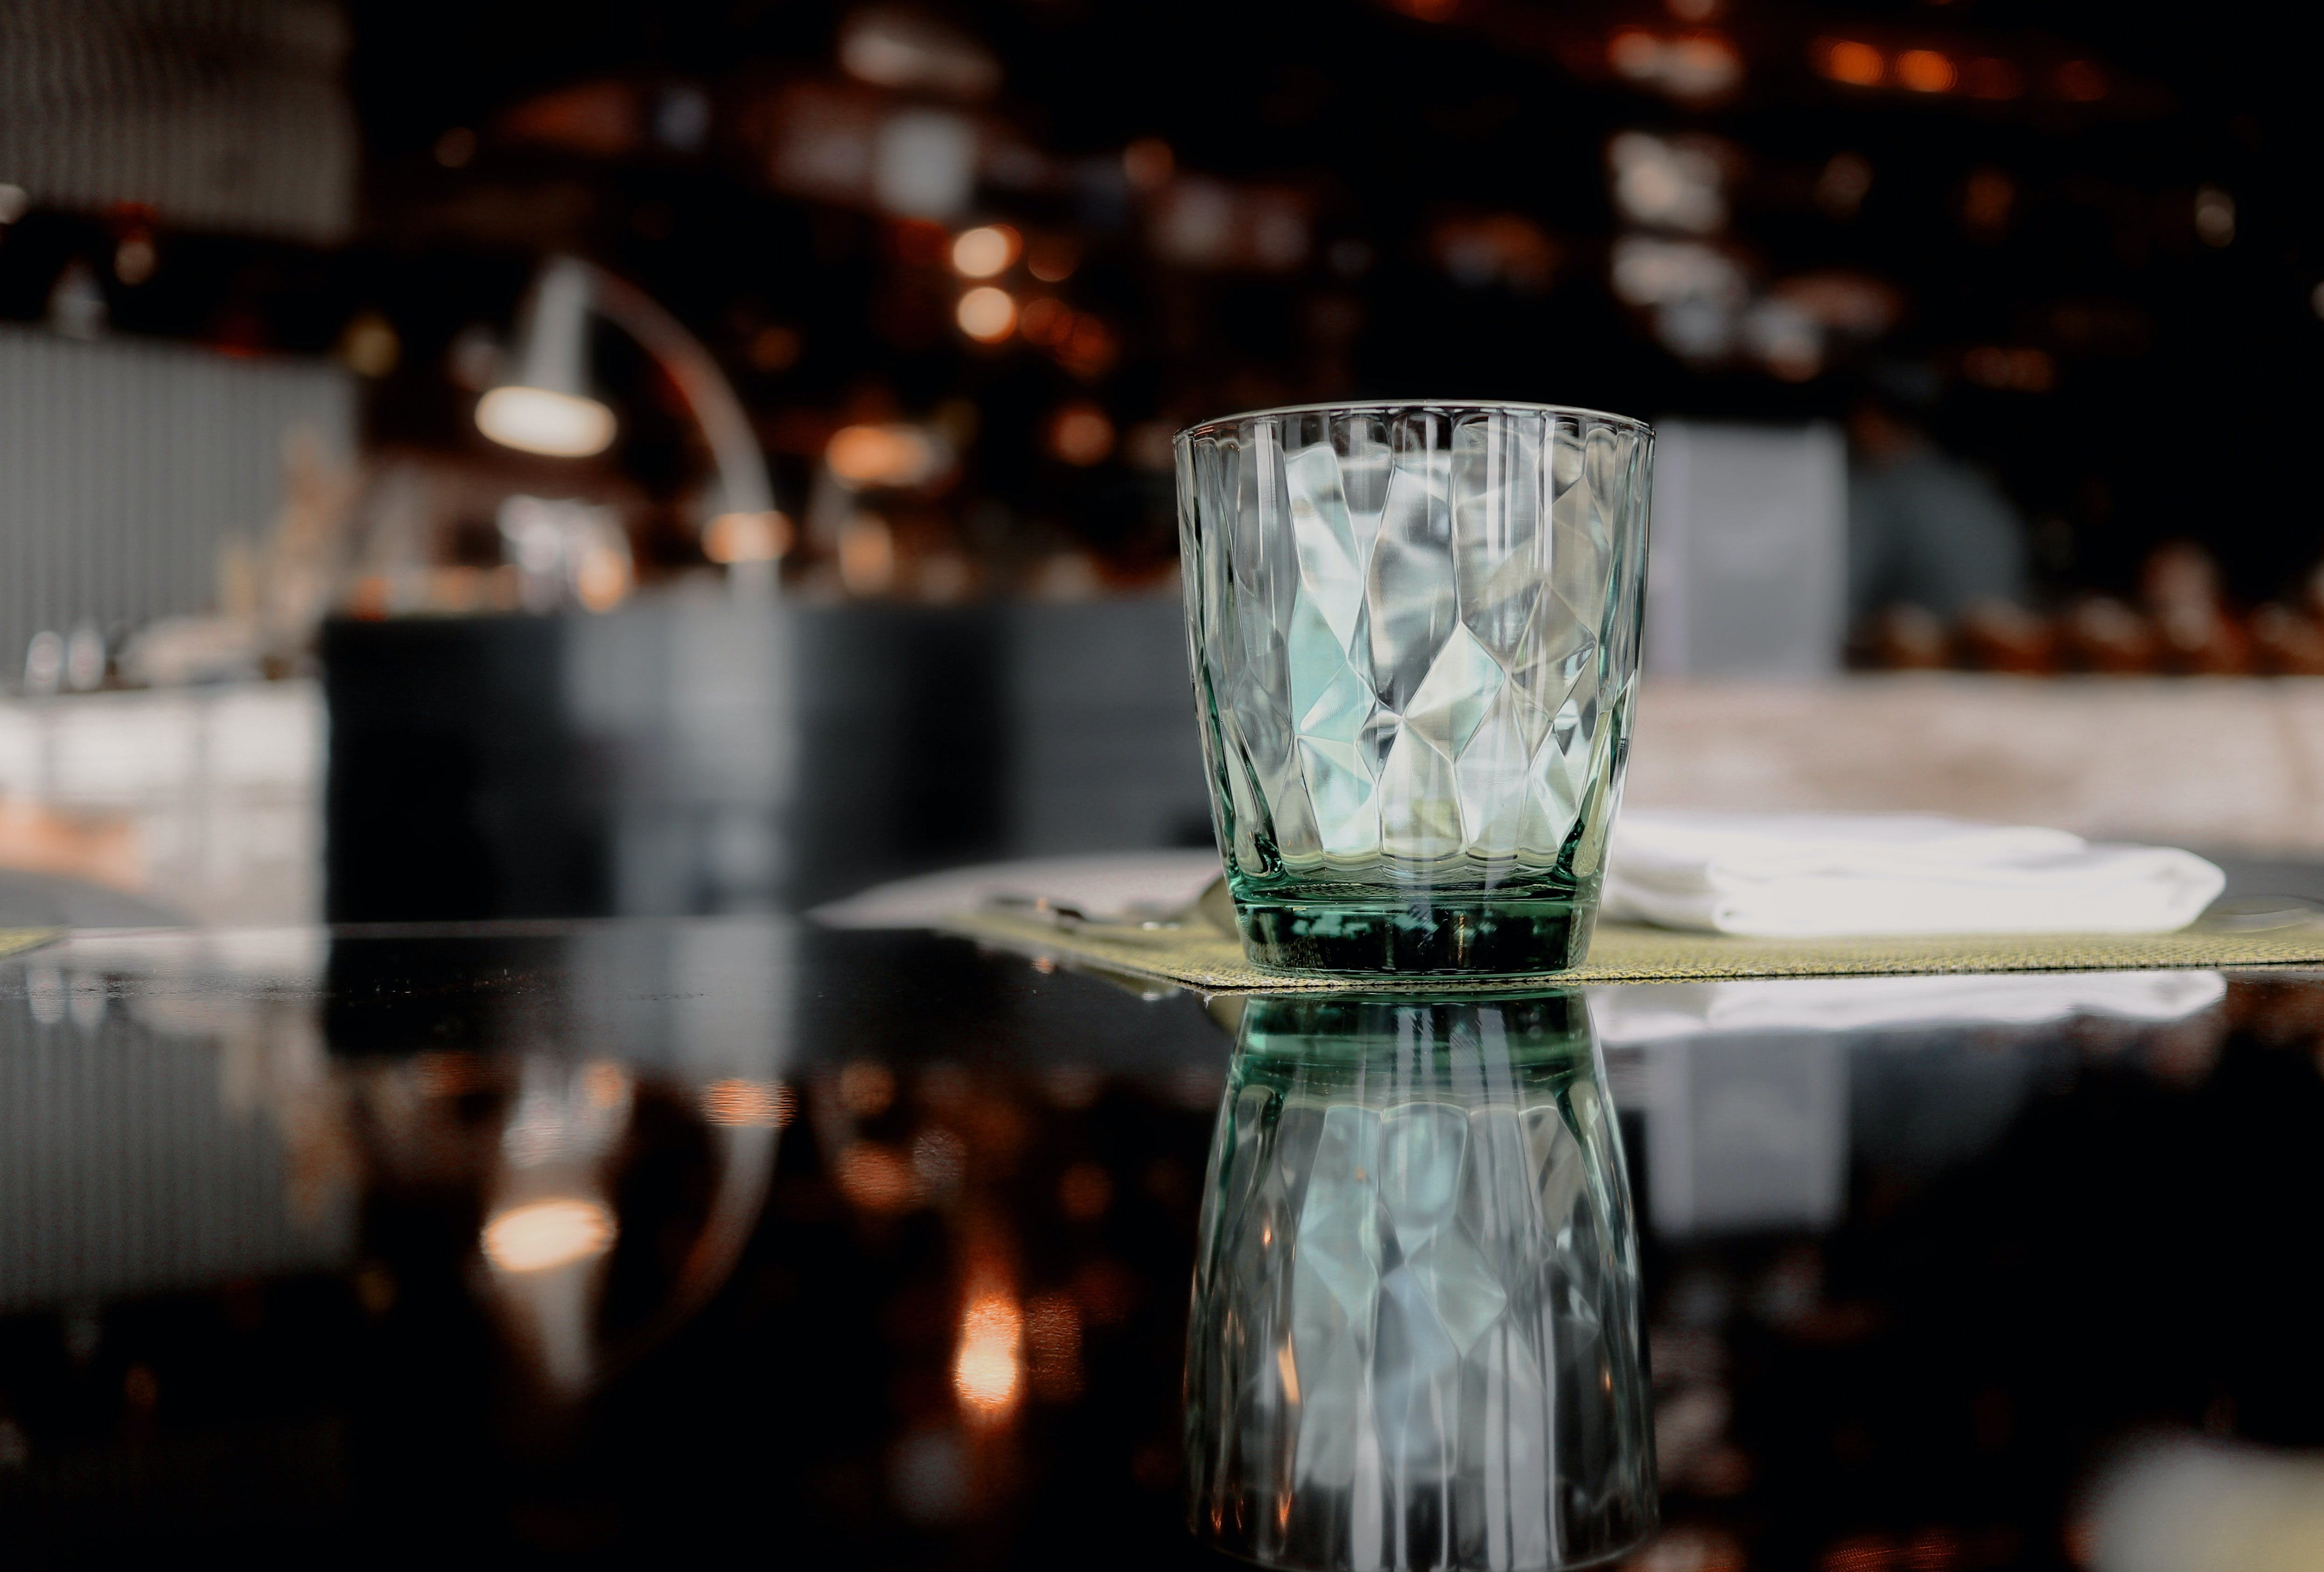 Close-Up Photo of Drinking Glass